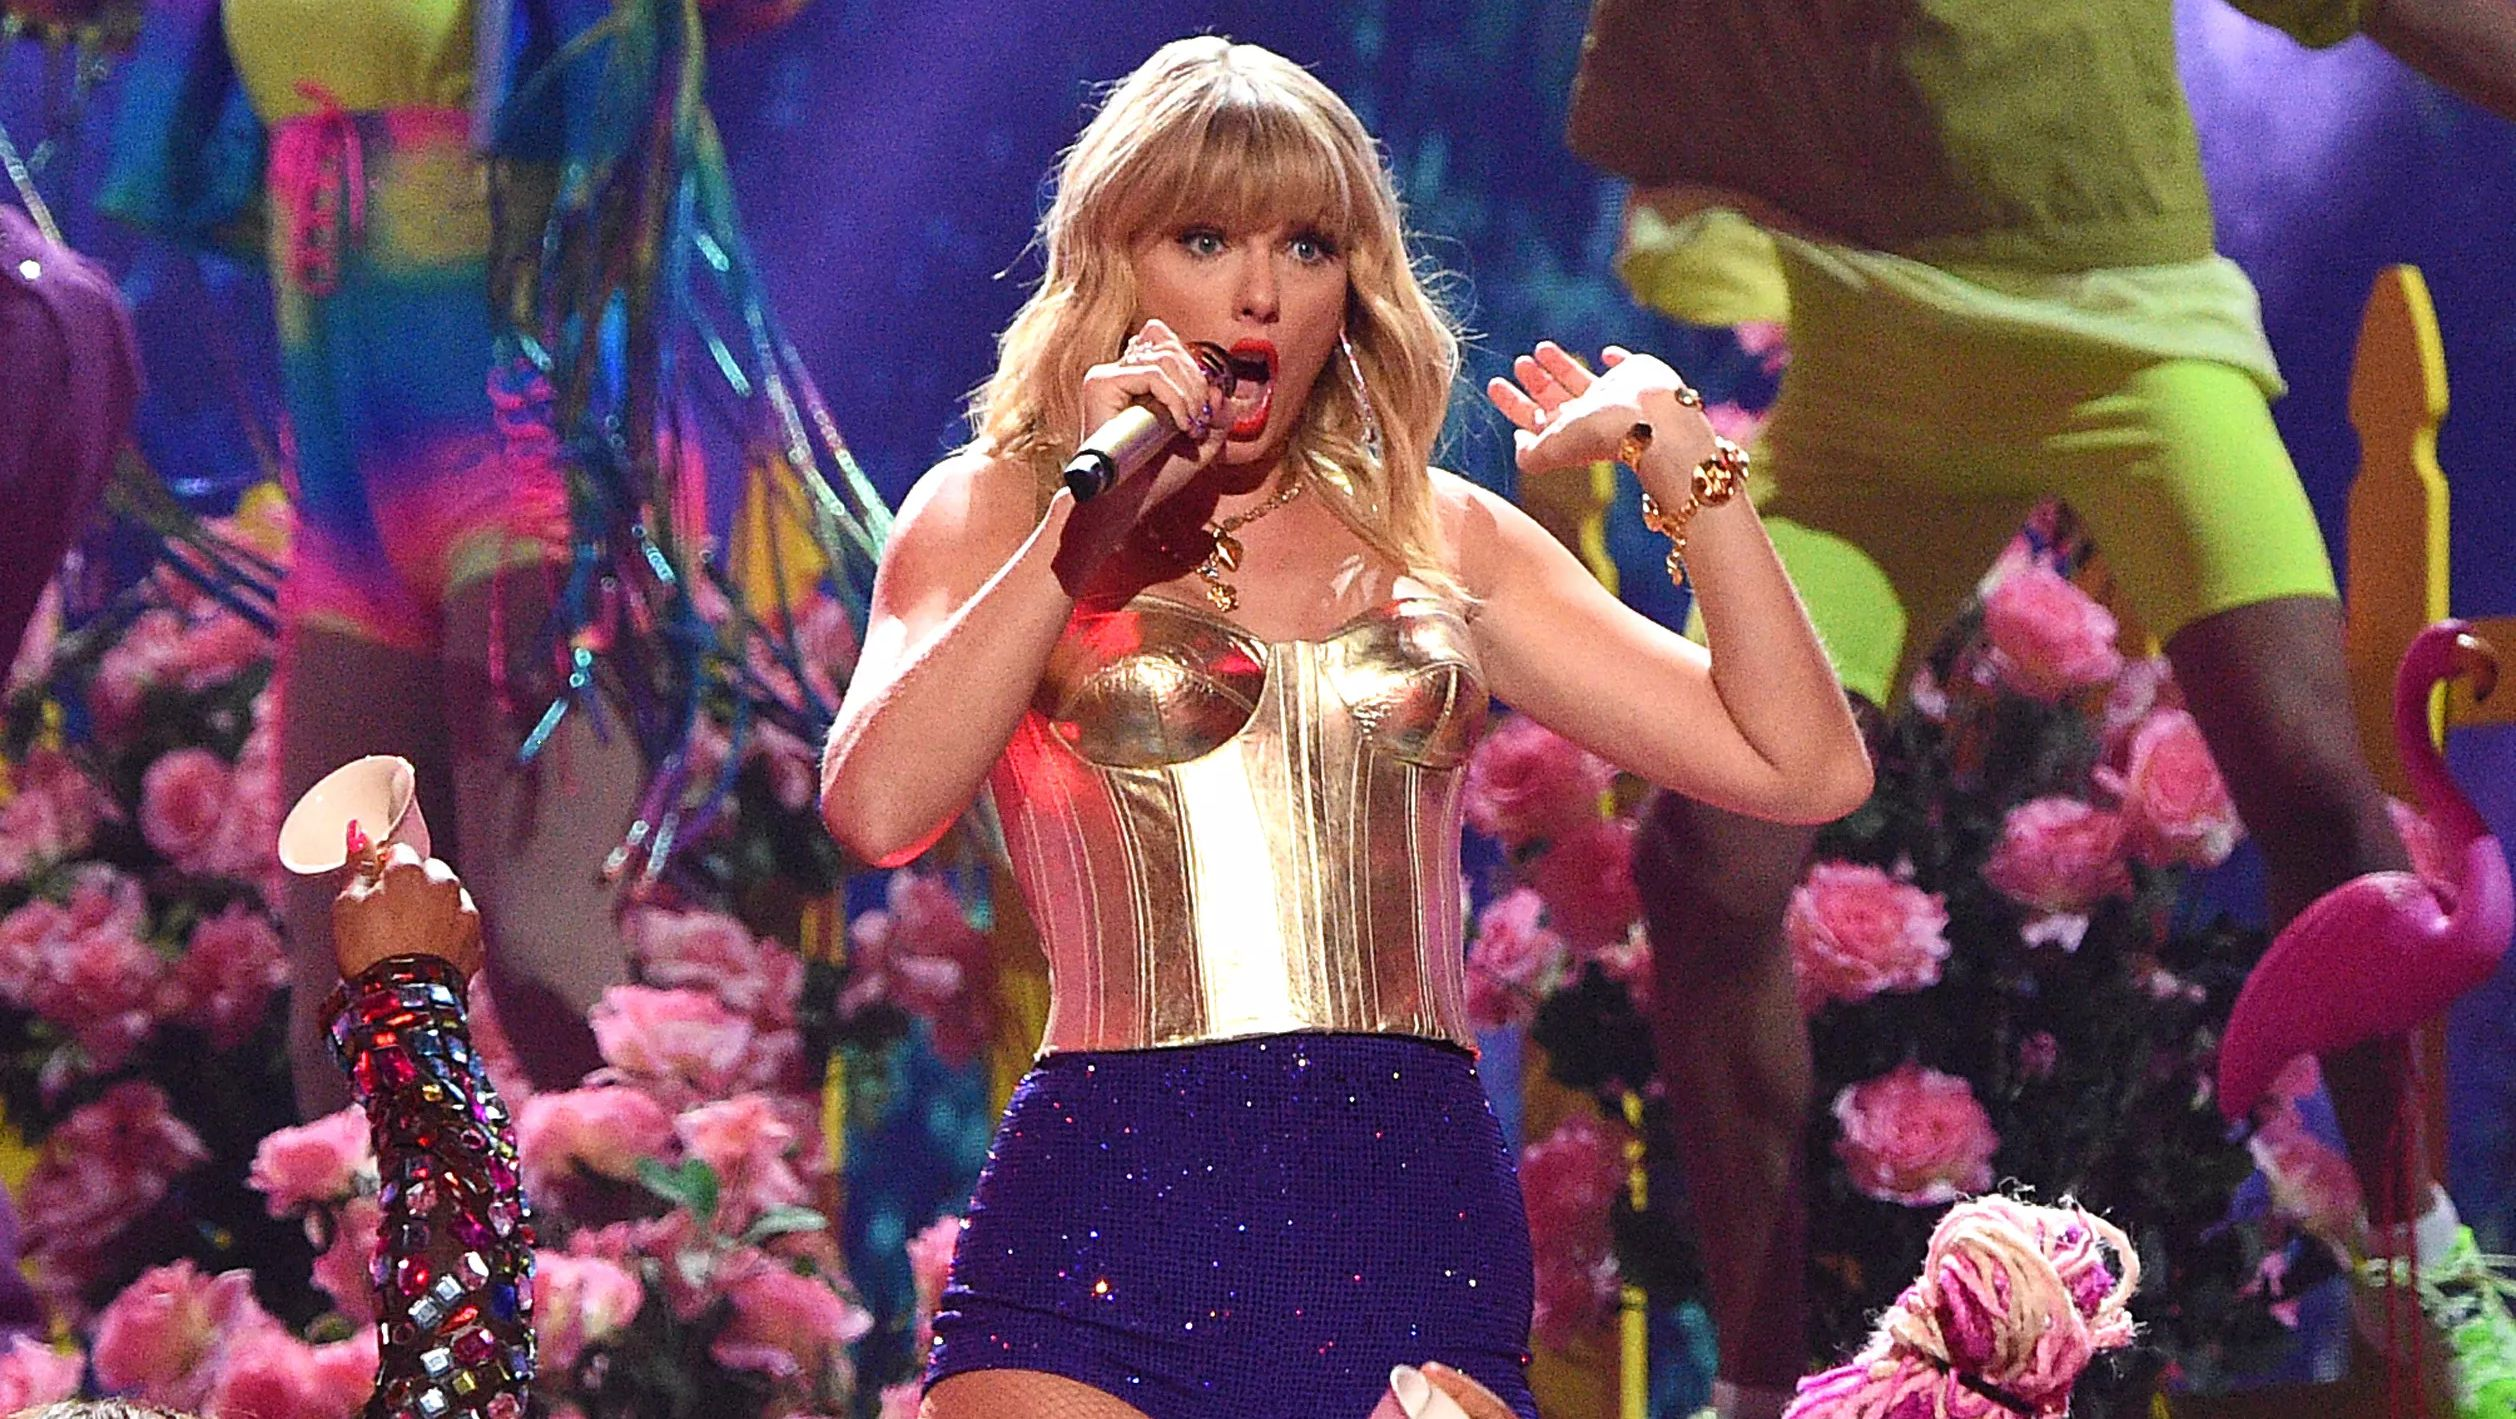 NEWARK, NEW JERSEY - AUGUST 26: Taylor Swift performs onstage during the 2019 MTV Video Music Awards at Prudential Center on August 26, 2019 in Newark, New Jersey.